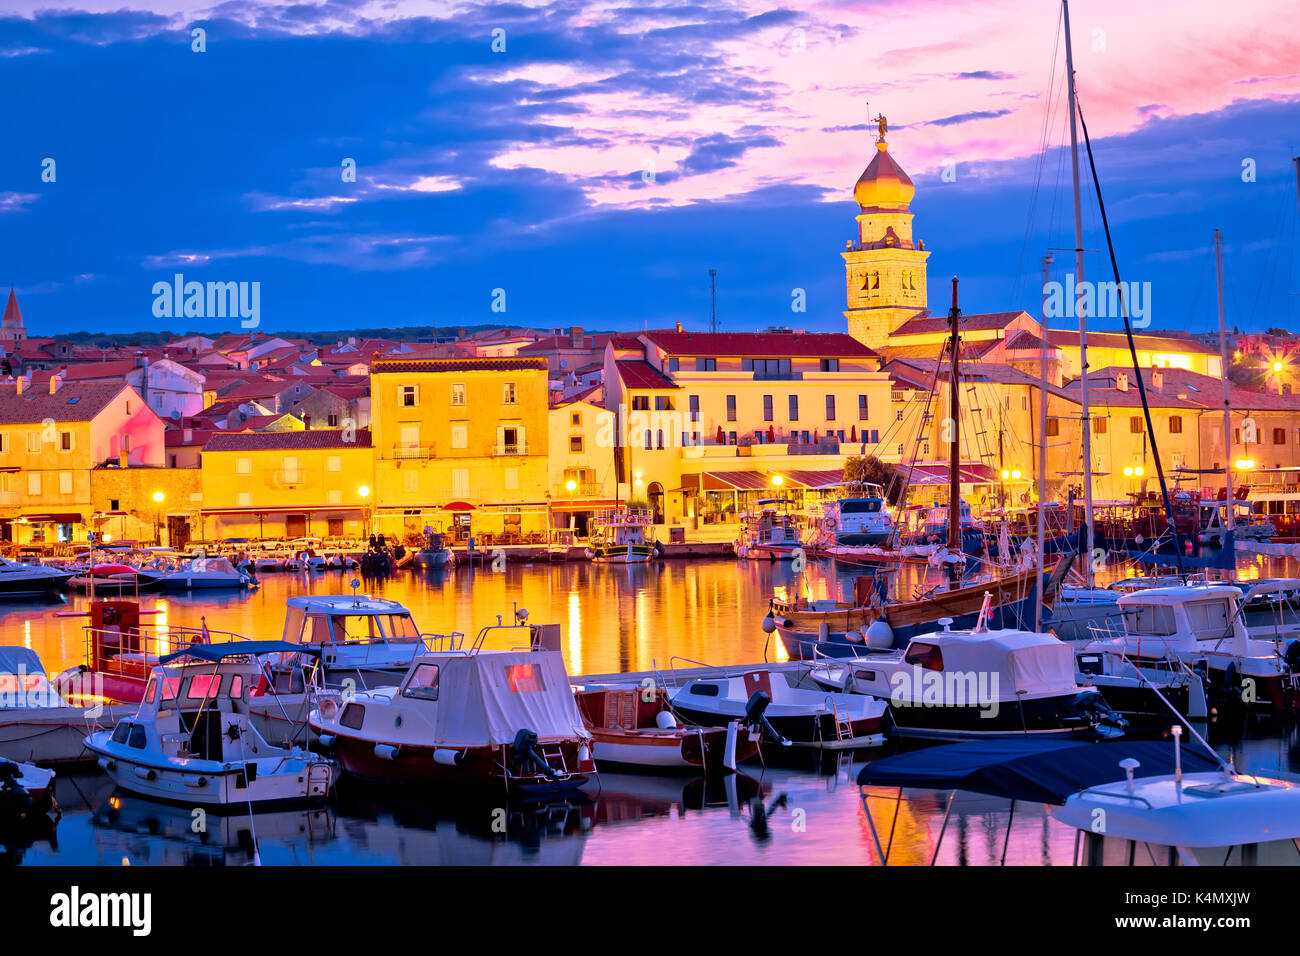 Historic island town of Krk dawn waterfront view, Kvarner bay archipelago of Croatia - Stock Image